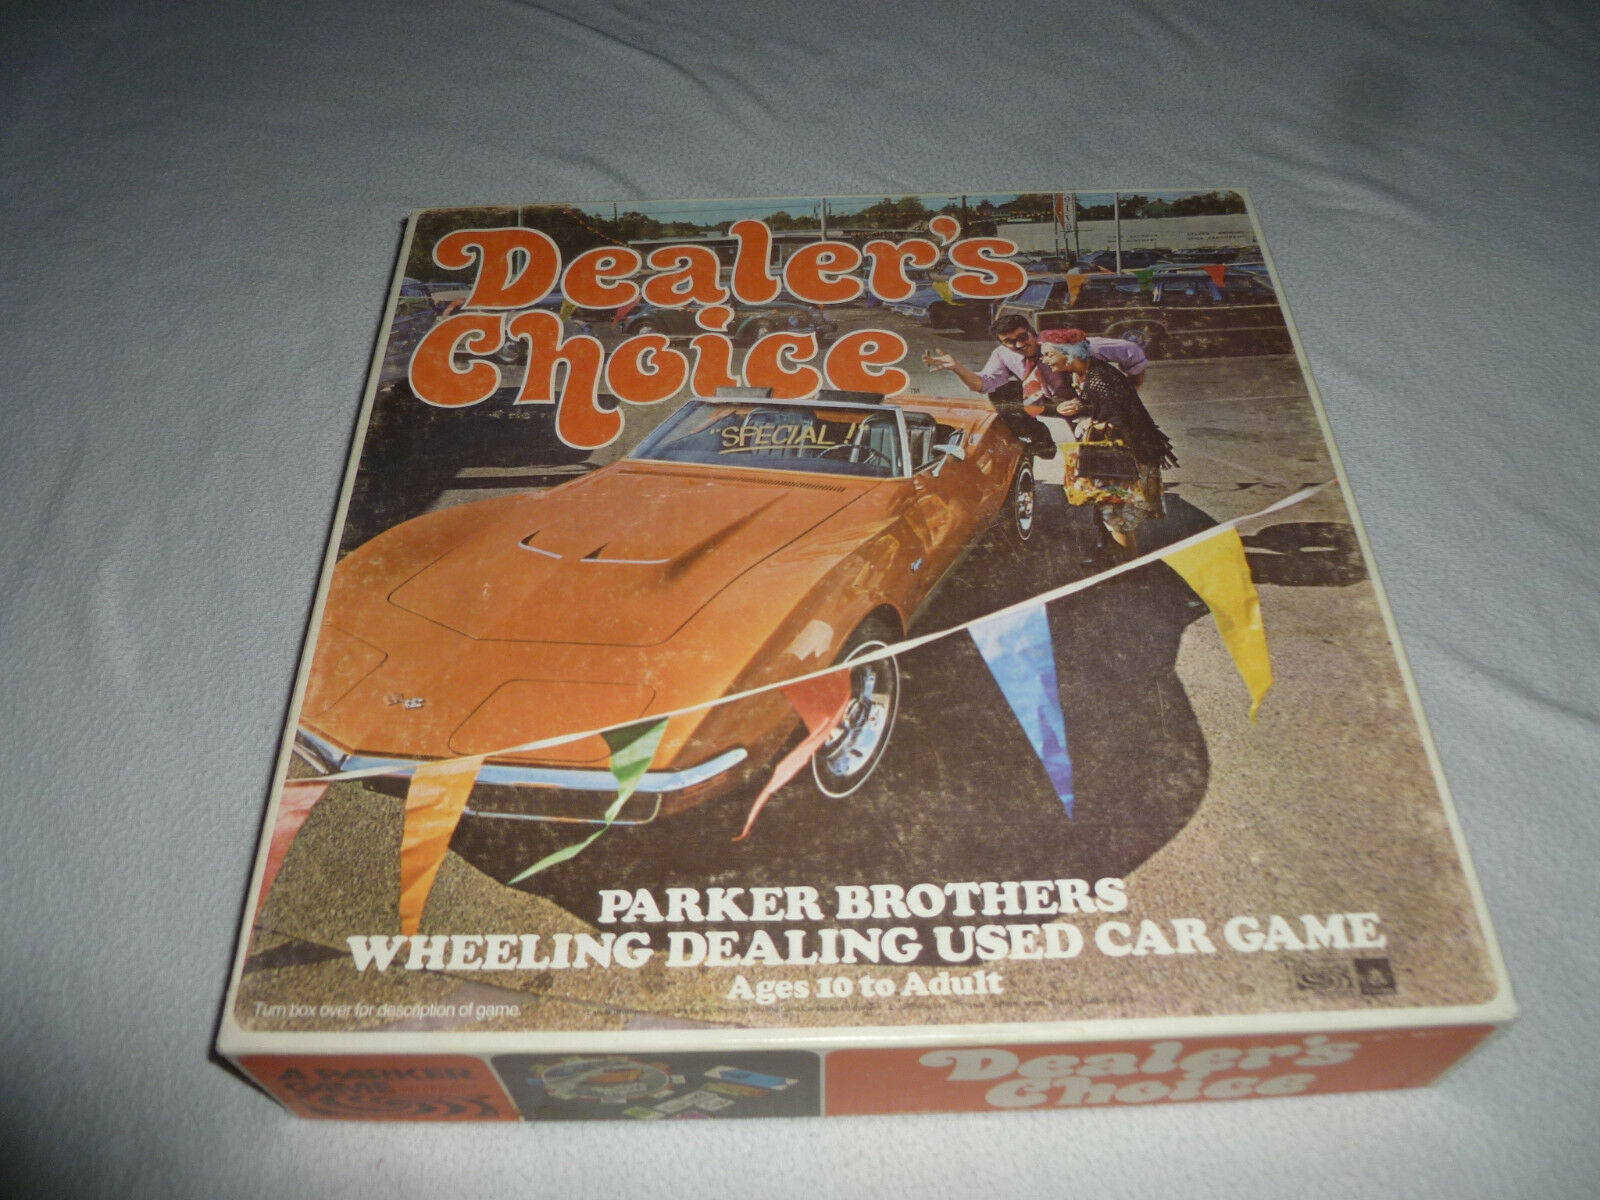 Dealers choice board parker brothers corvette used car salesman game 1972 cib